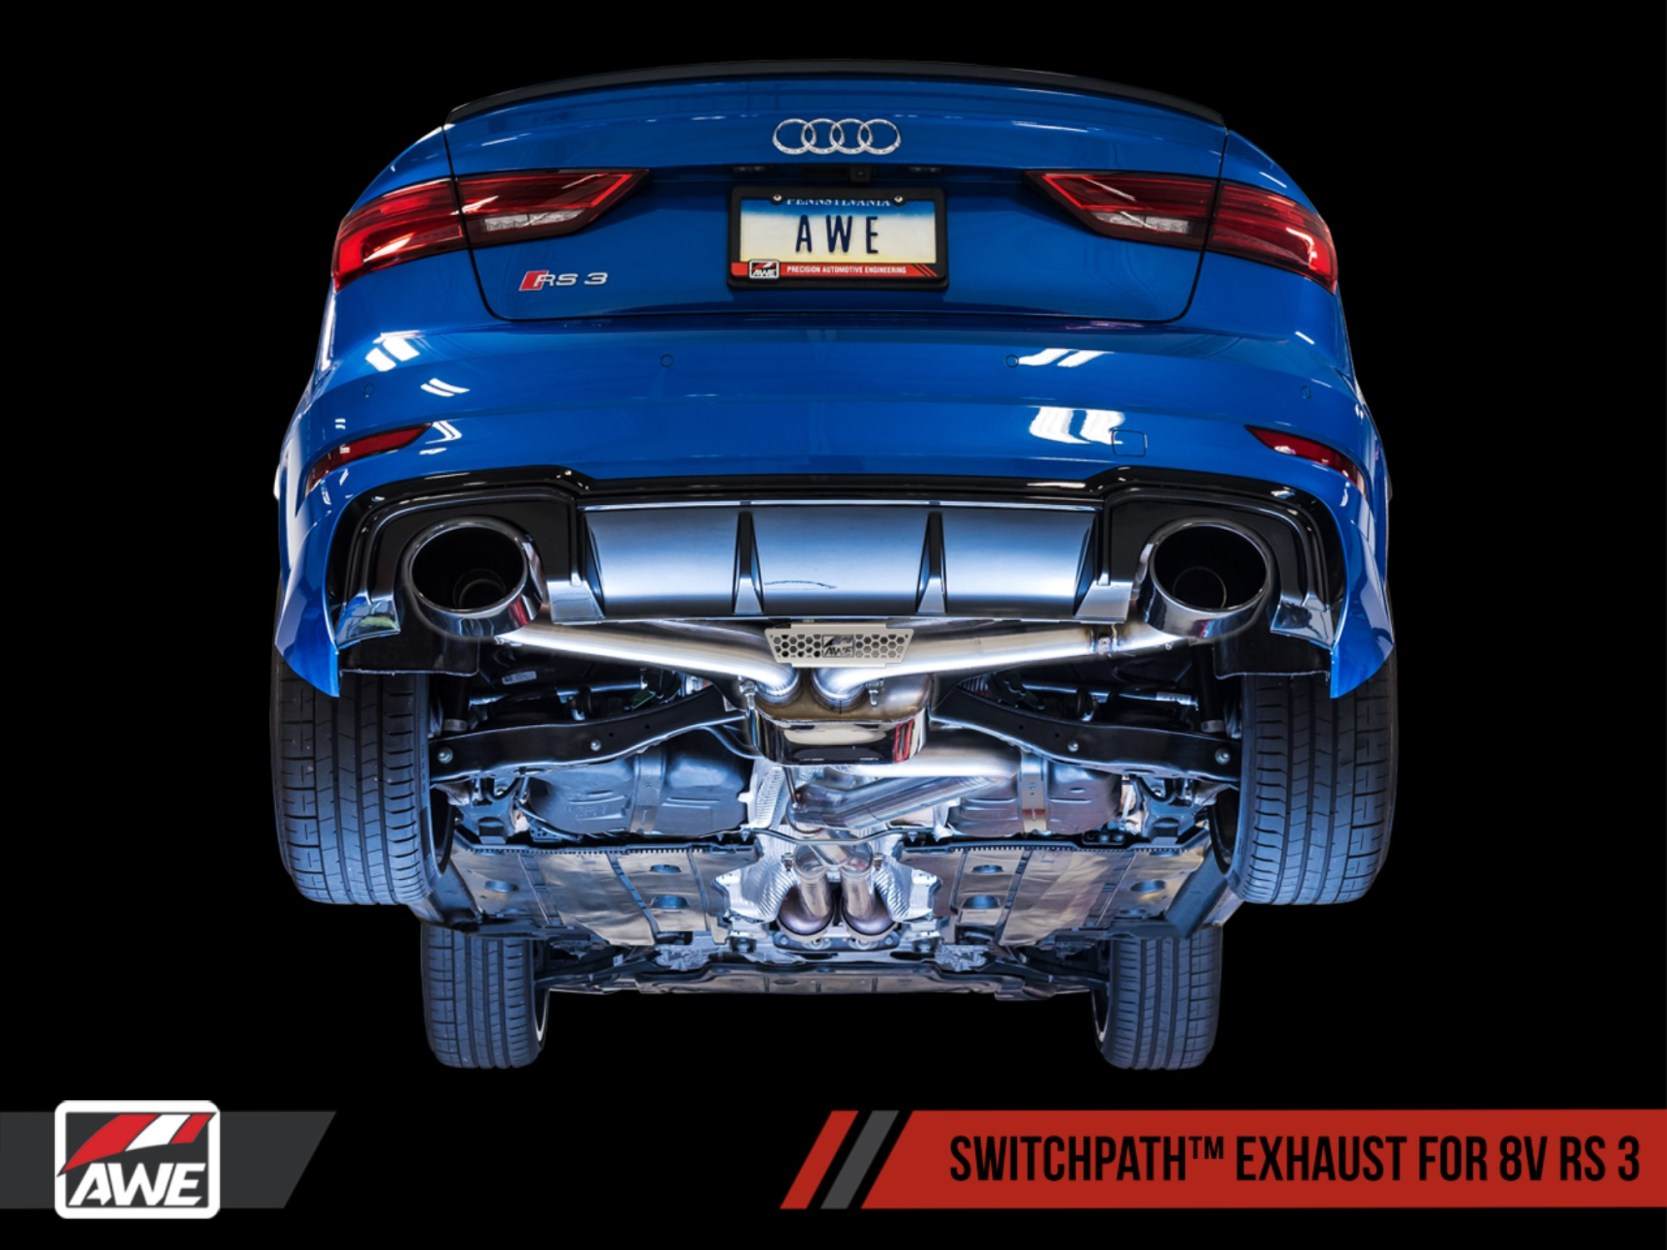 AWE Releases New Exhaust Suite For The Audi 8V RS 3